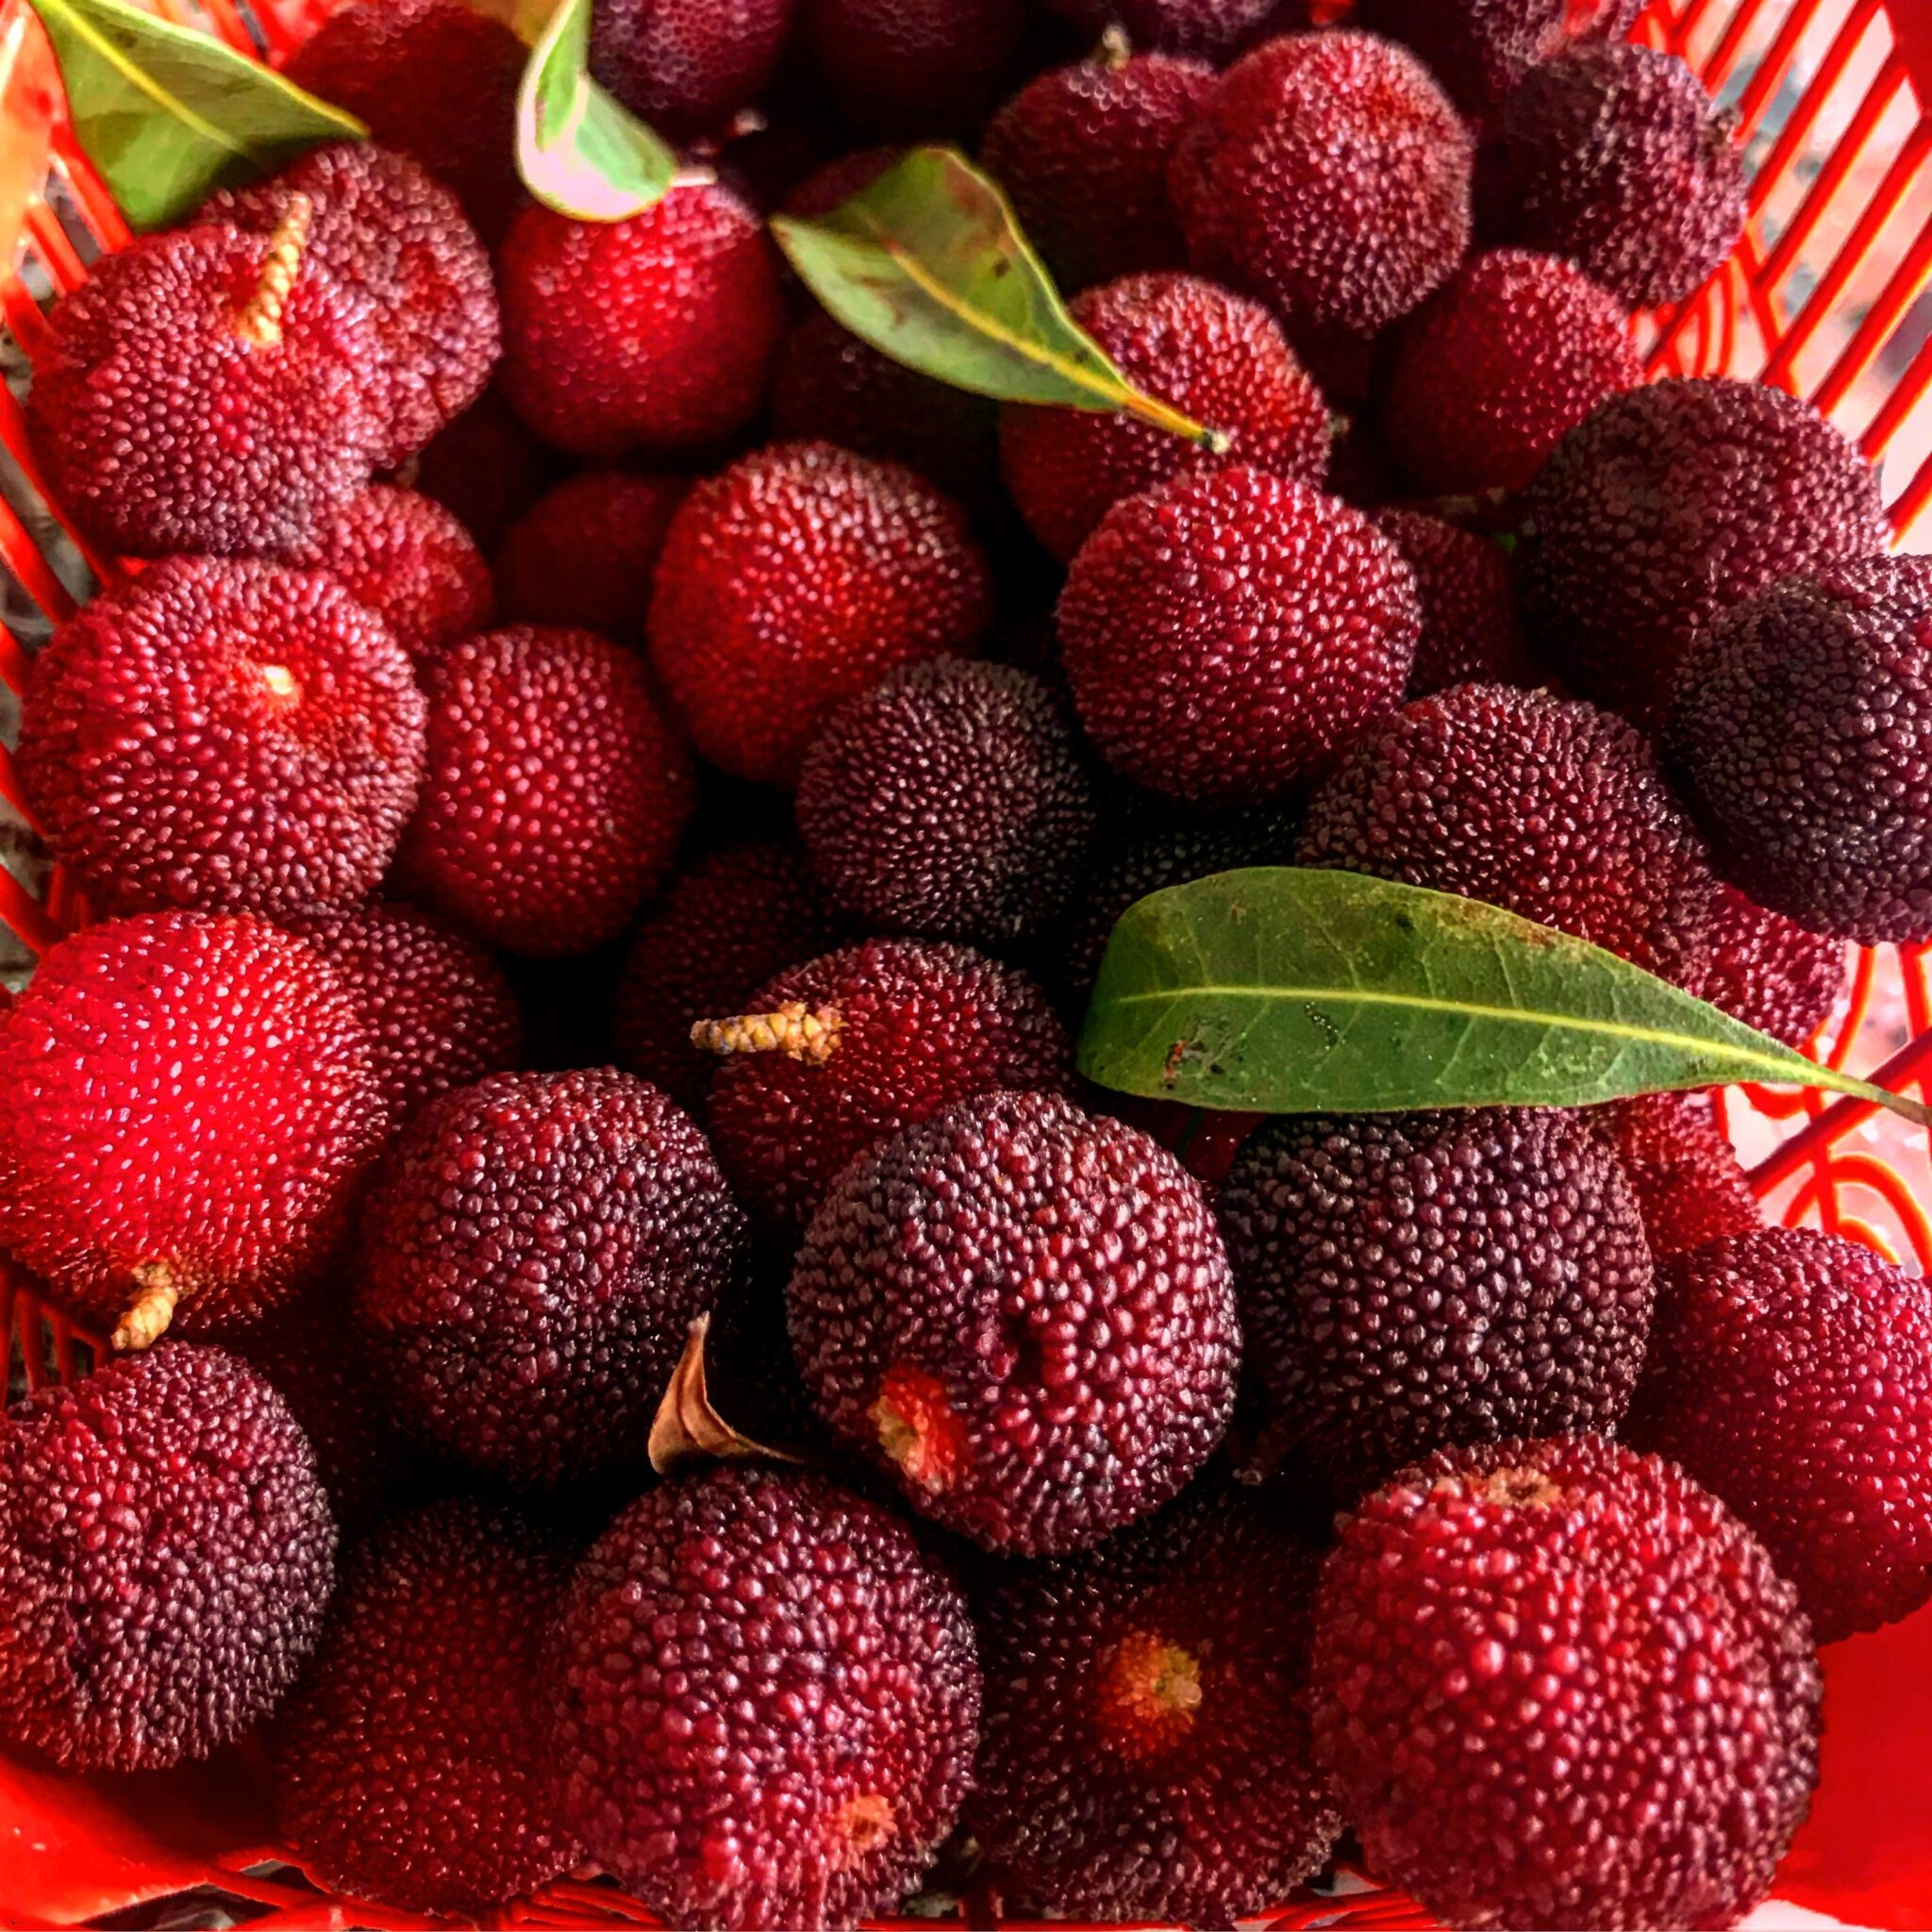 Red lychee fruit